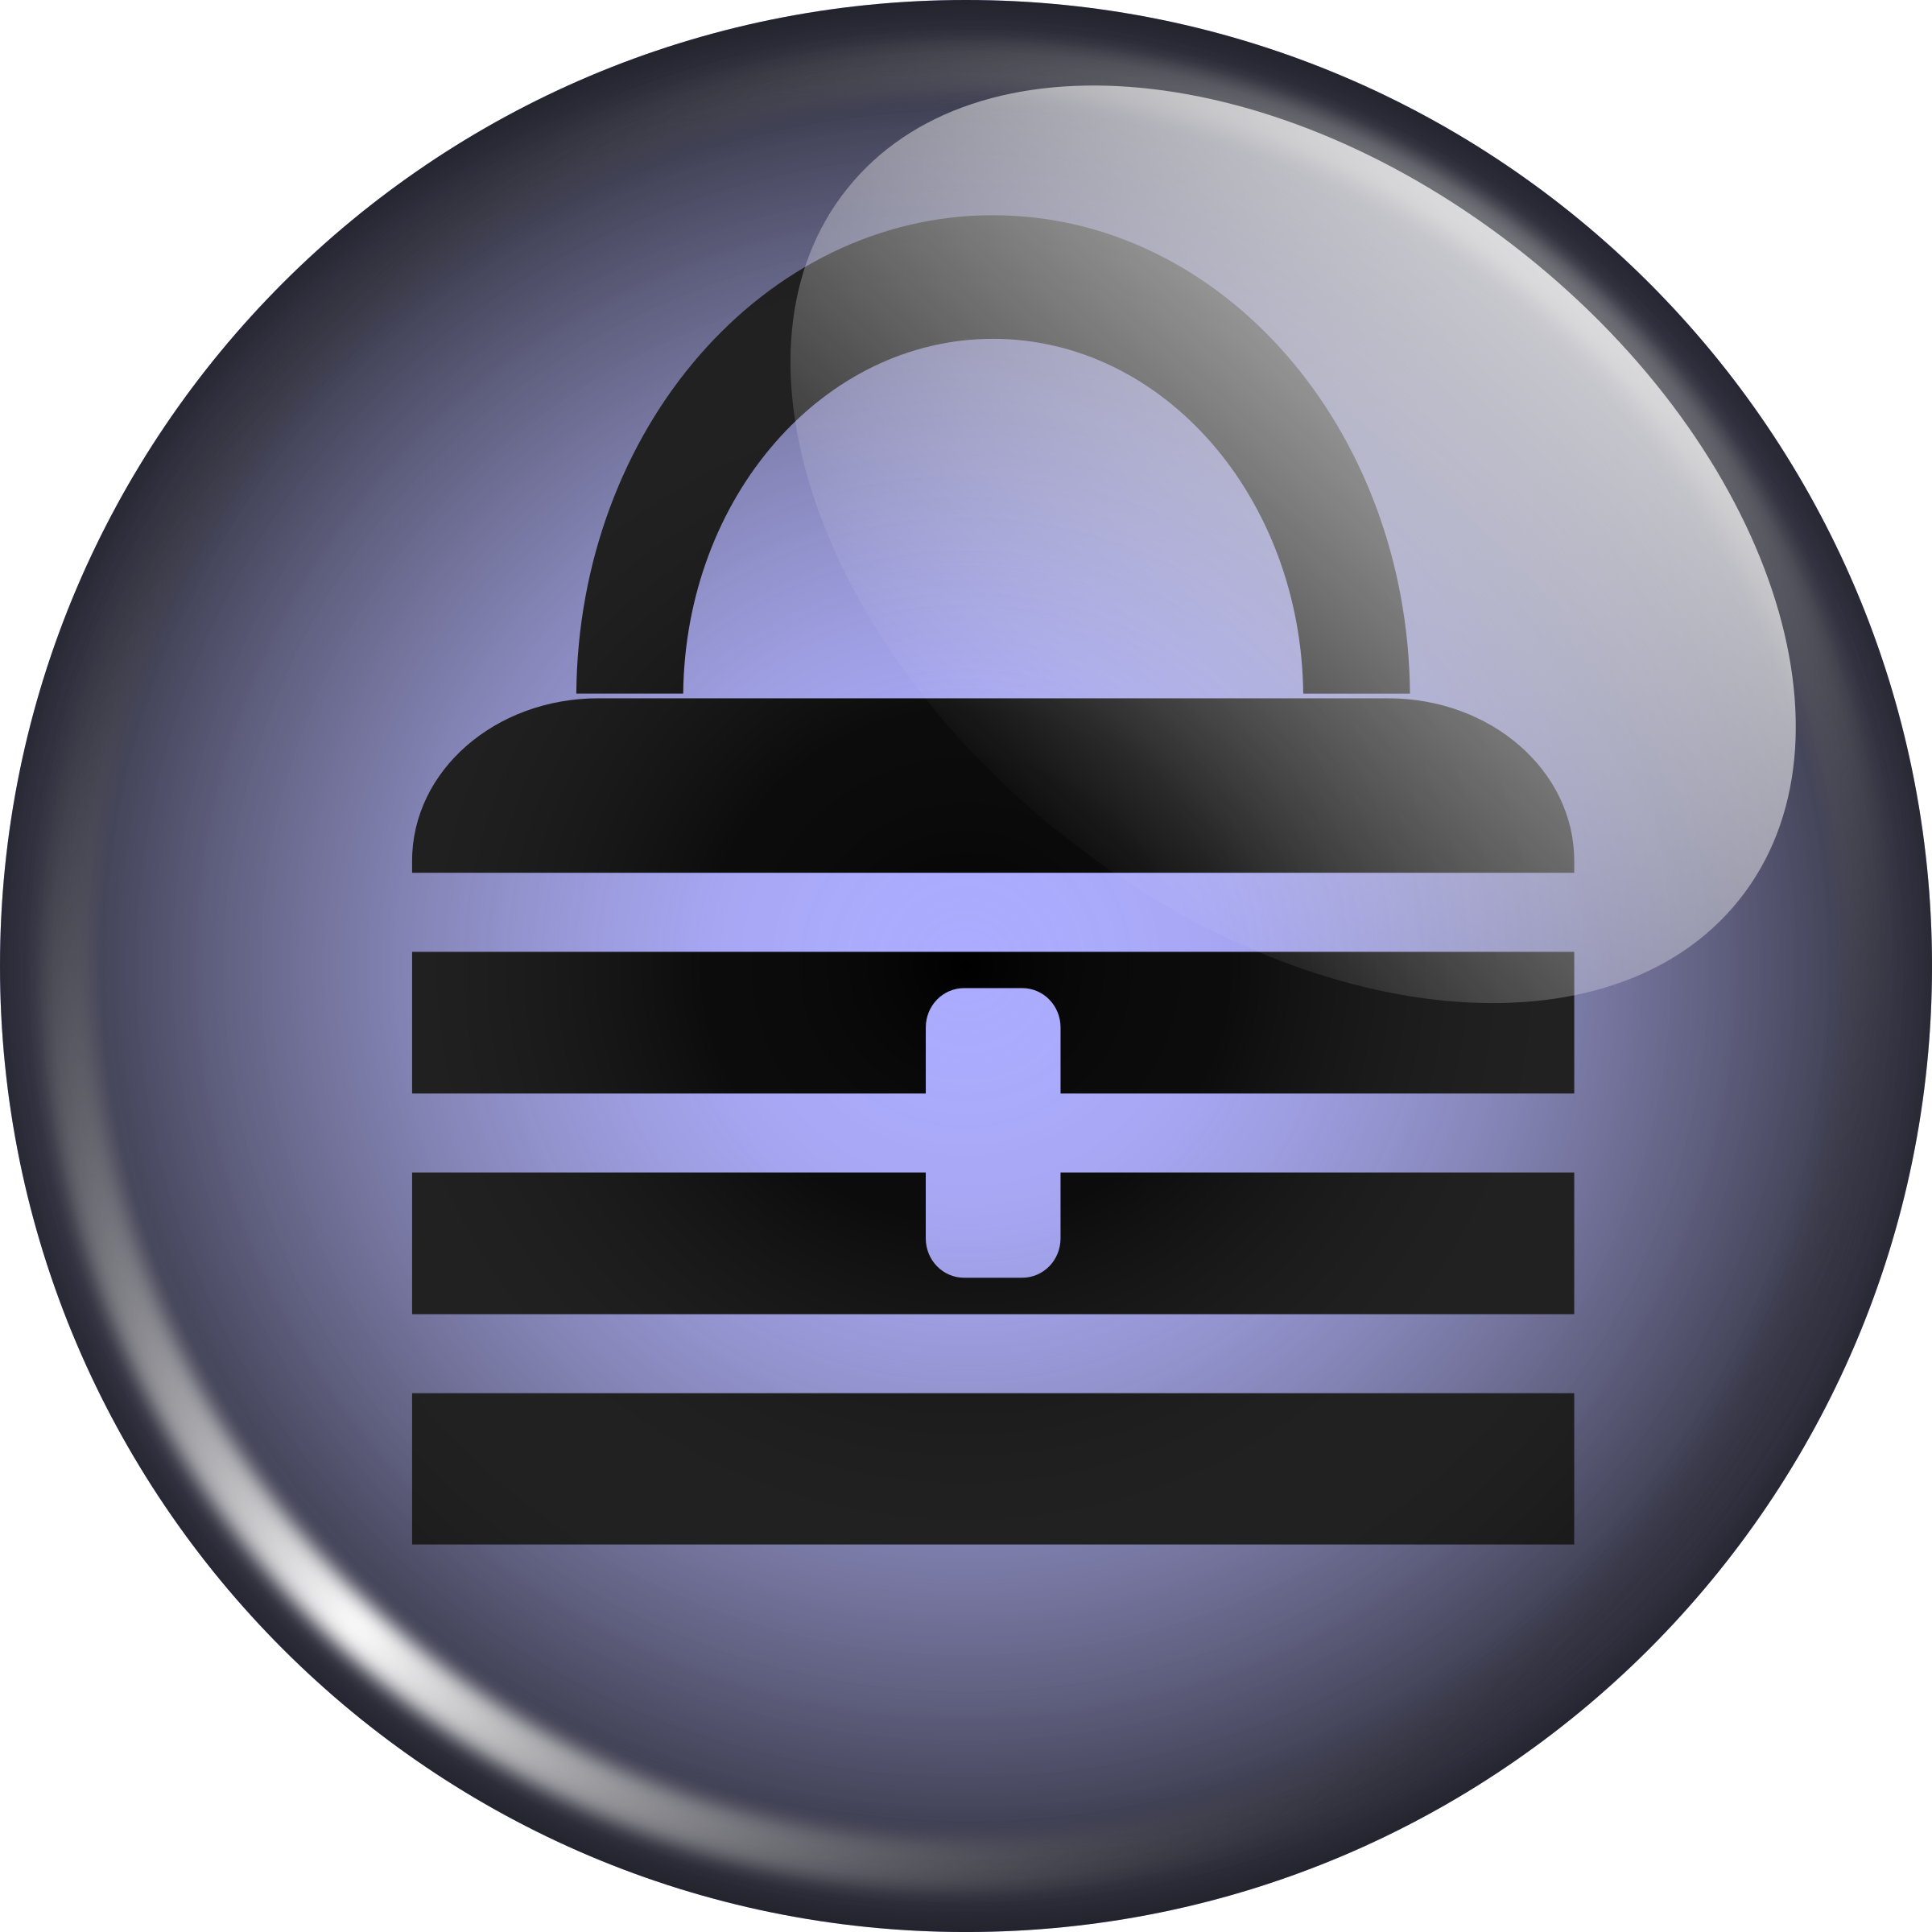 Keepass dock icon by coredump